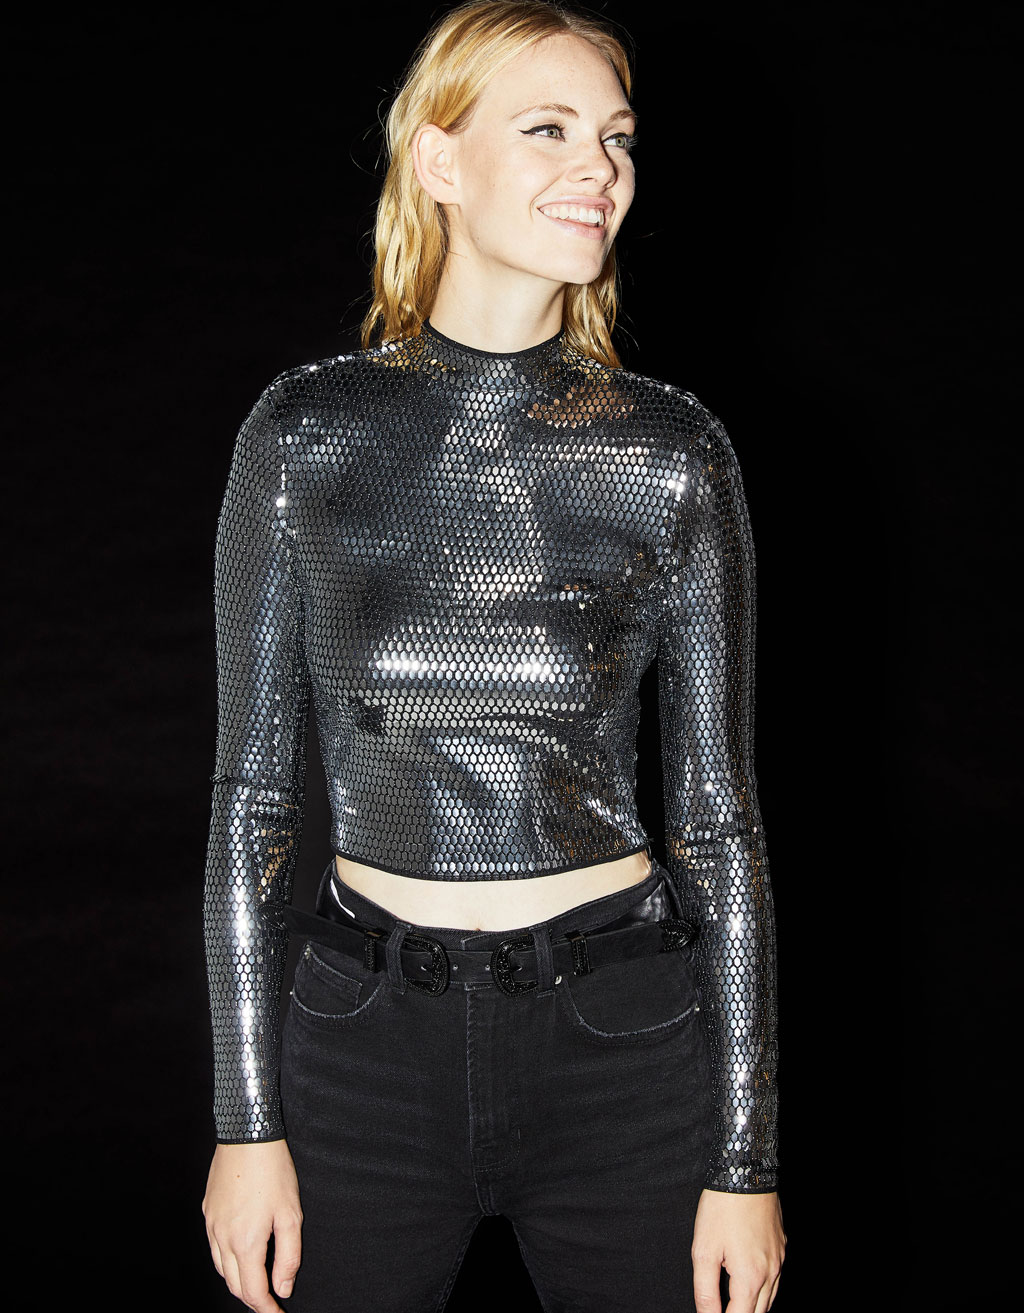 Cropped-Shirt mit Metallic-Effekt